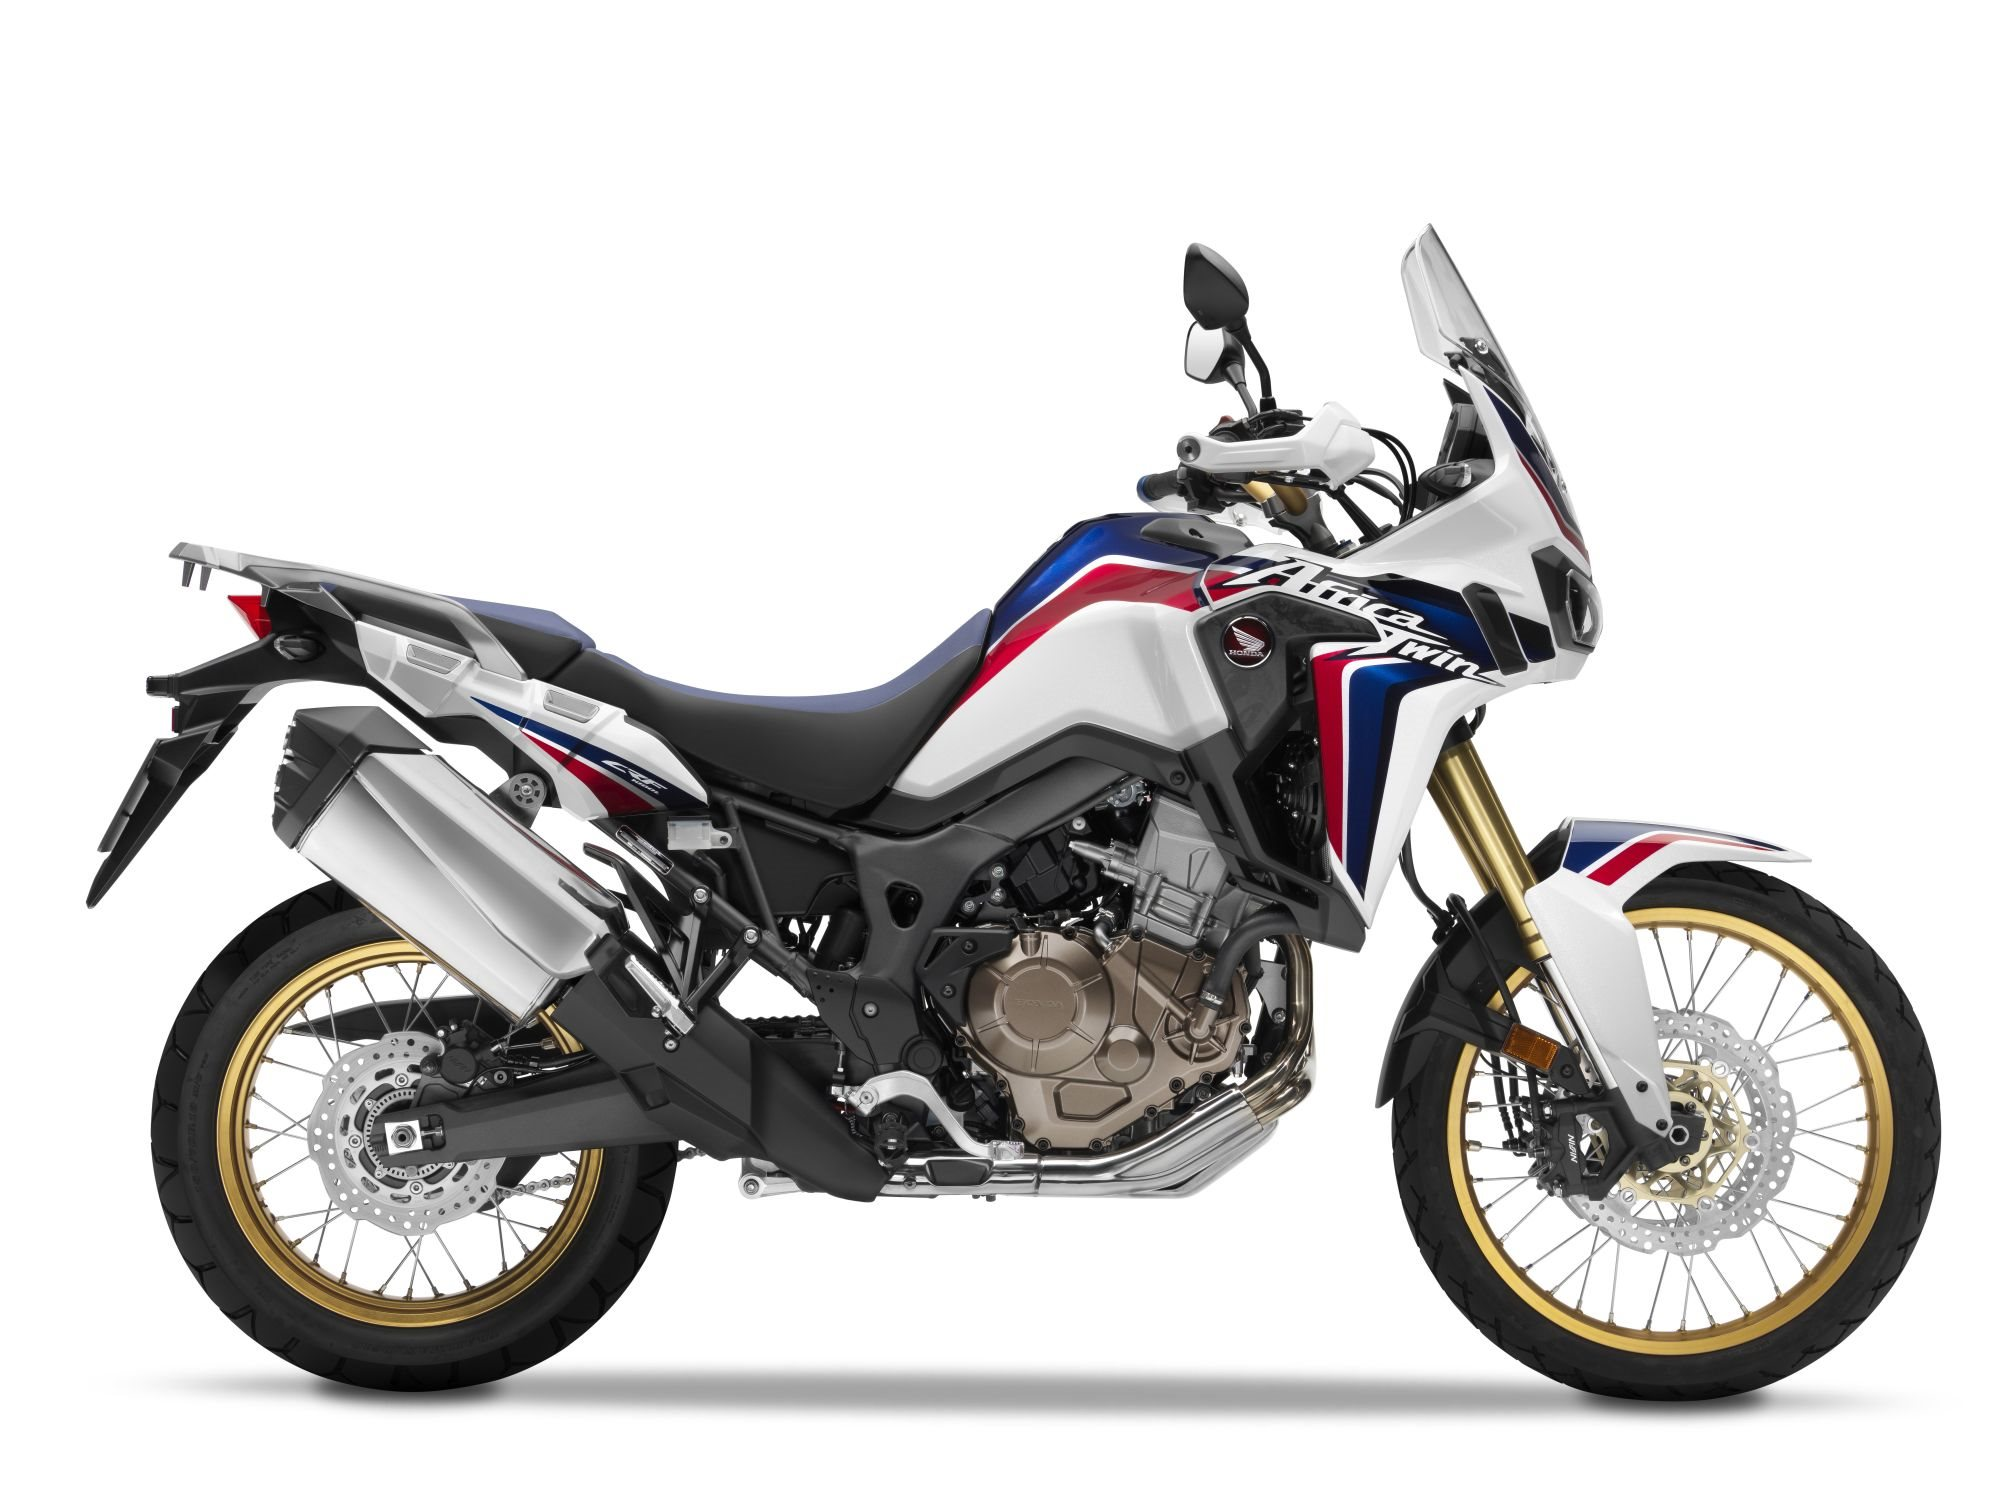 motorrad honda crf1000l africa twin dct baujahr 2018 0. Black Bedroom Furniture Sets. Home Design Ideas